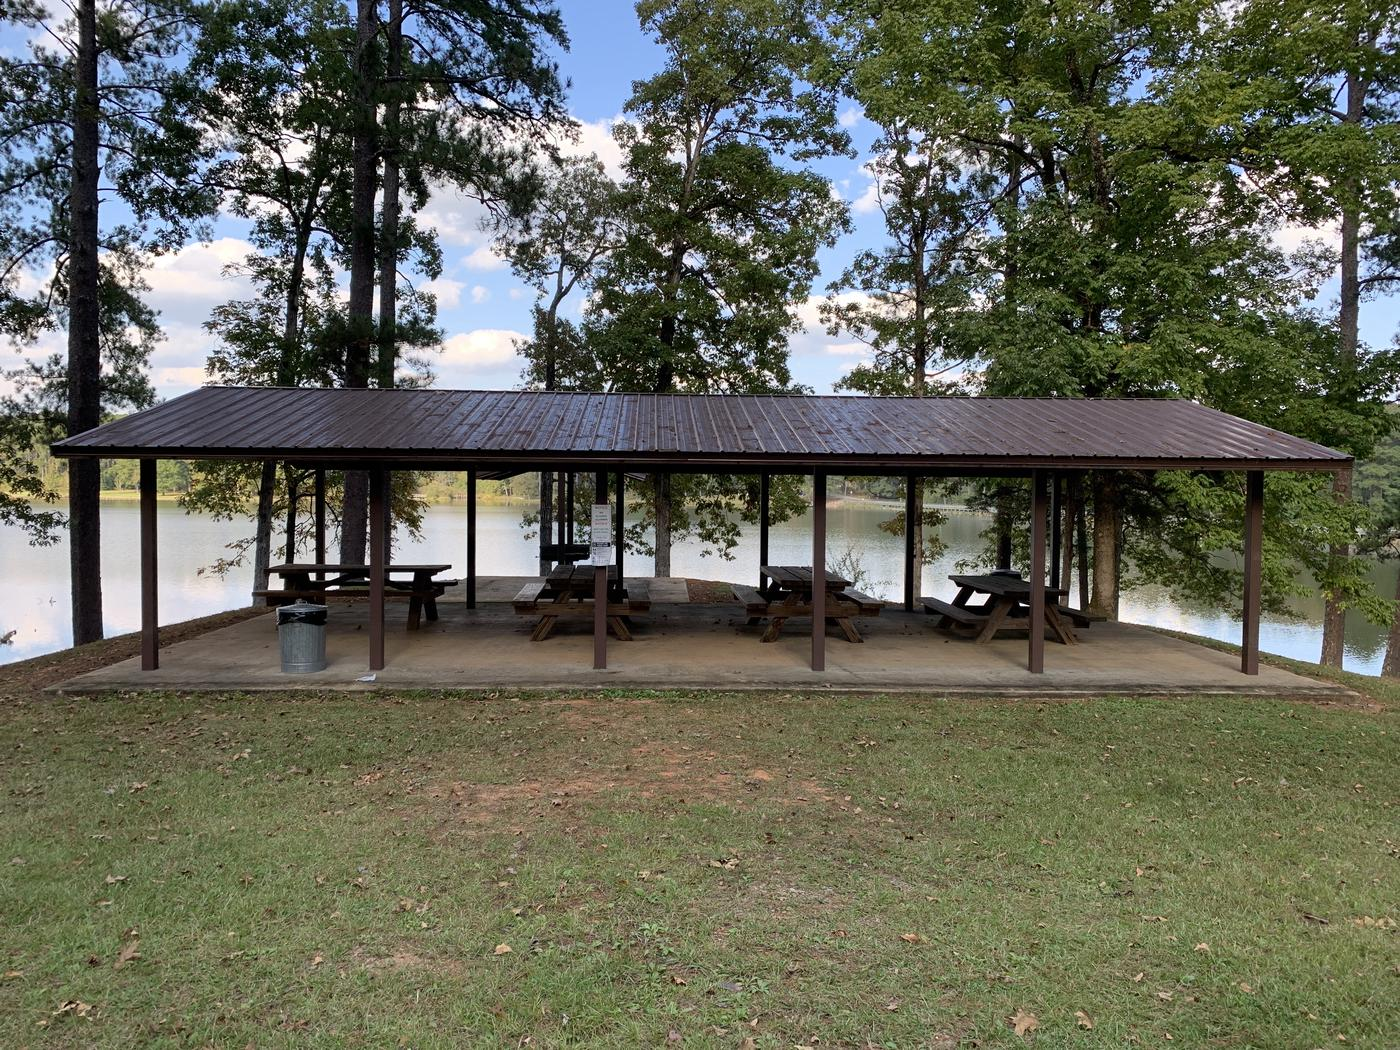 Picnic Point pavilion